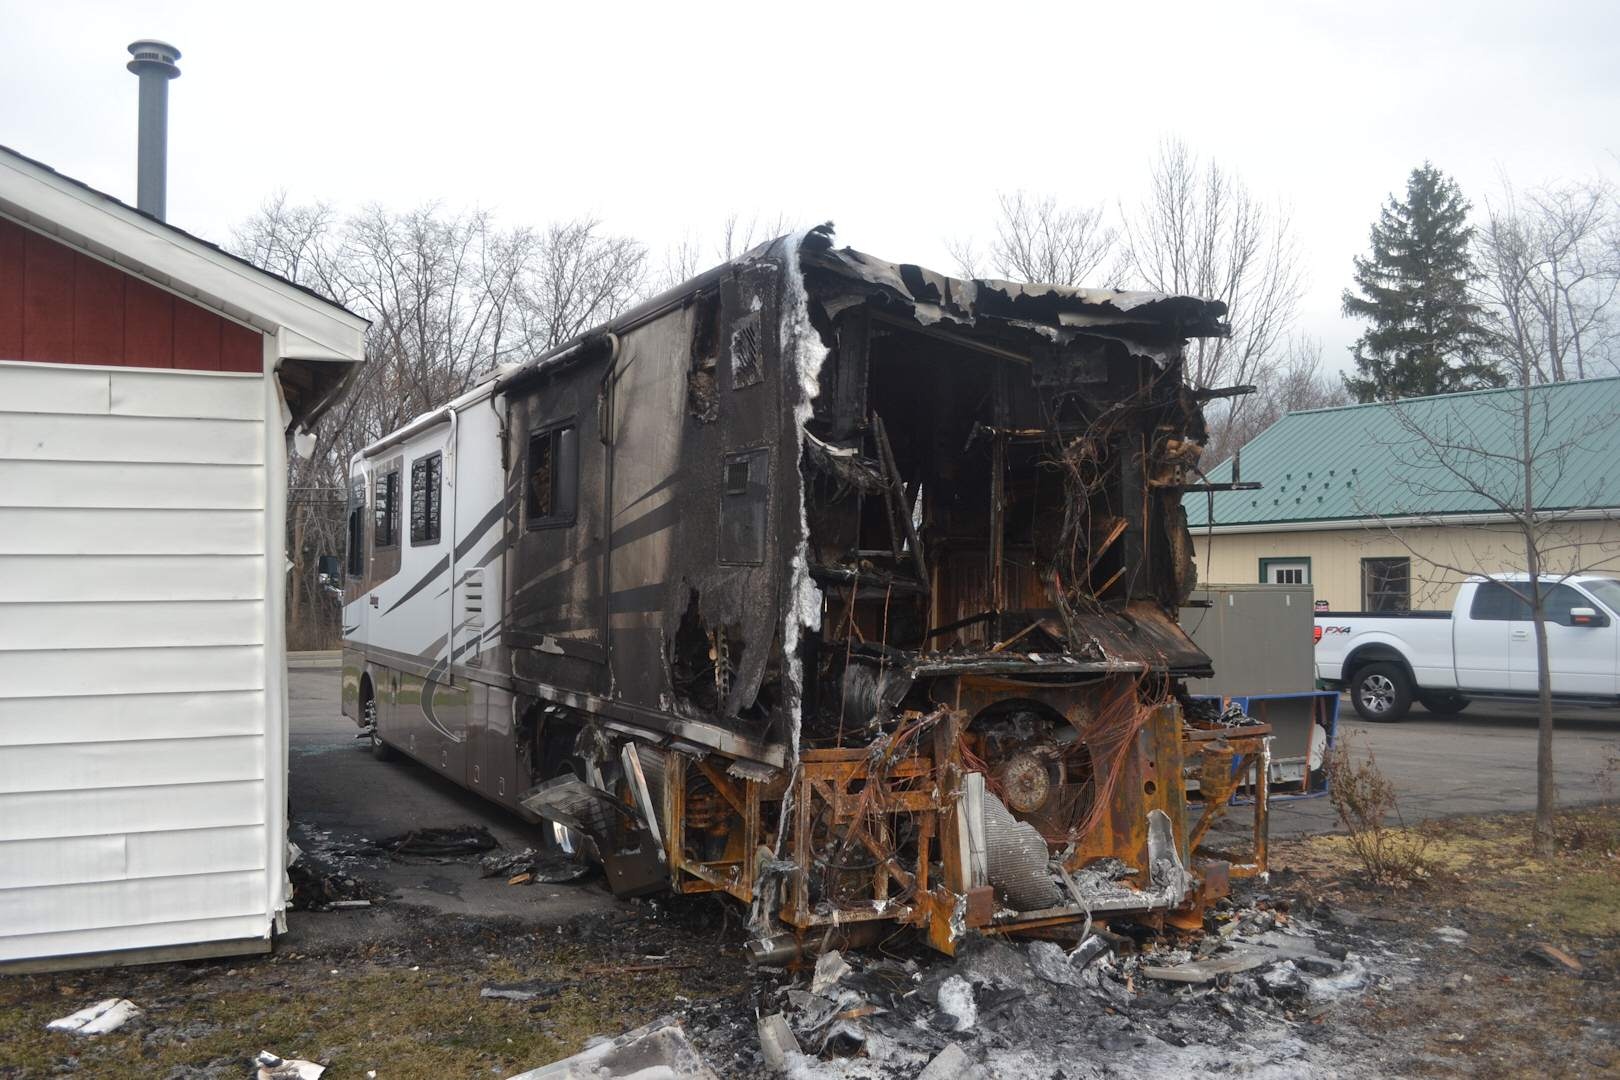 Motor Home Fire Investigation in Corning, New York